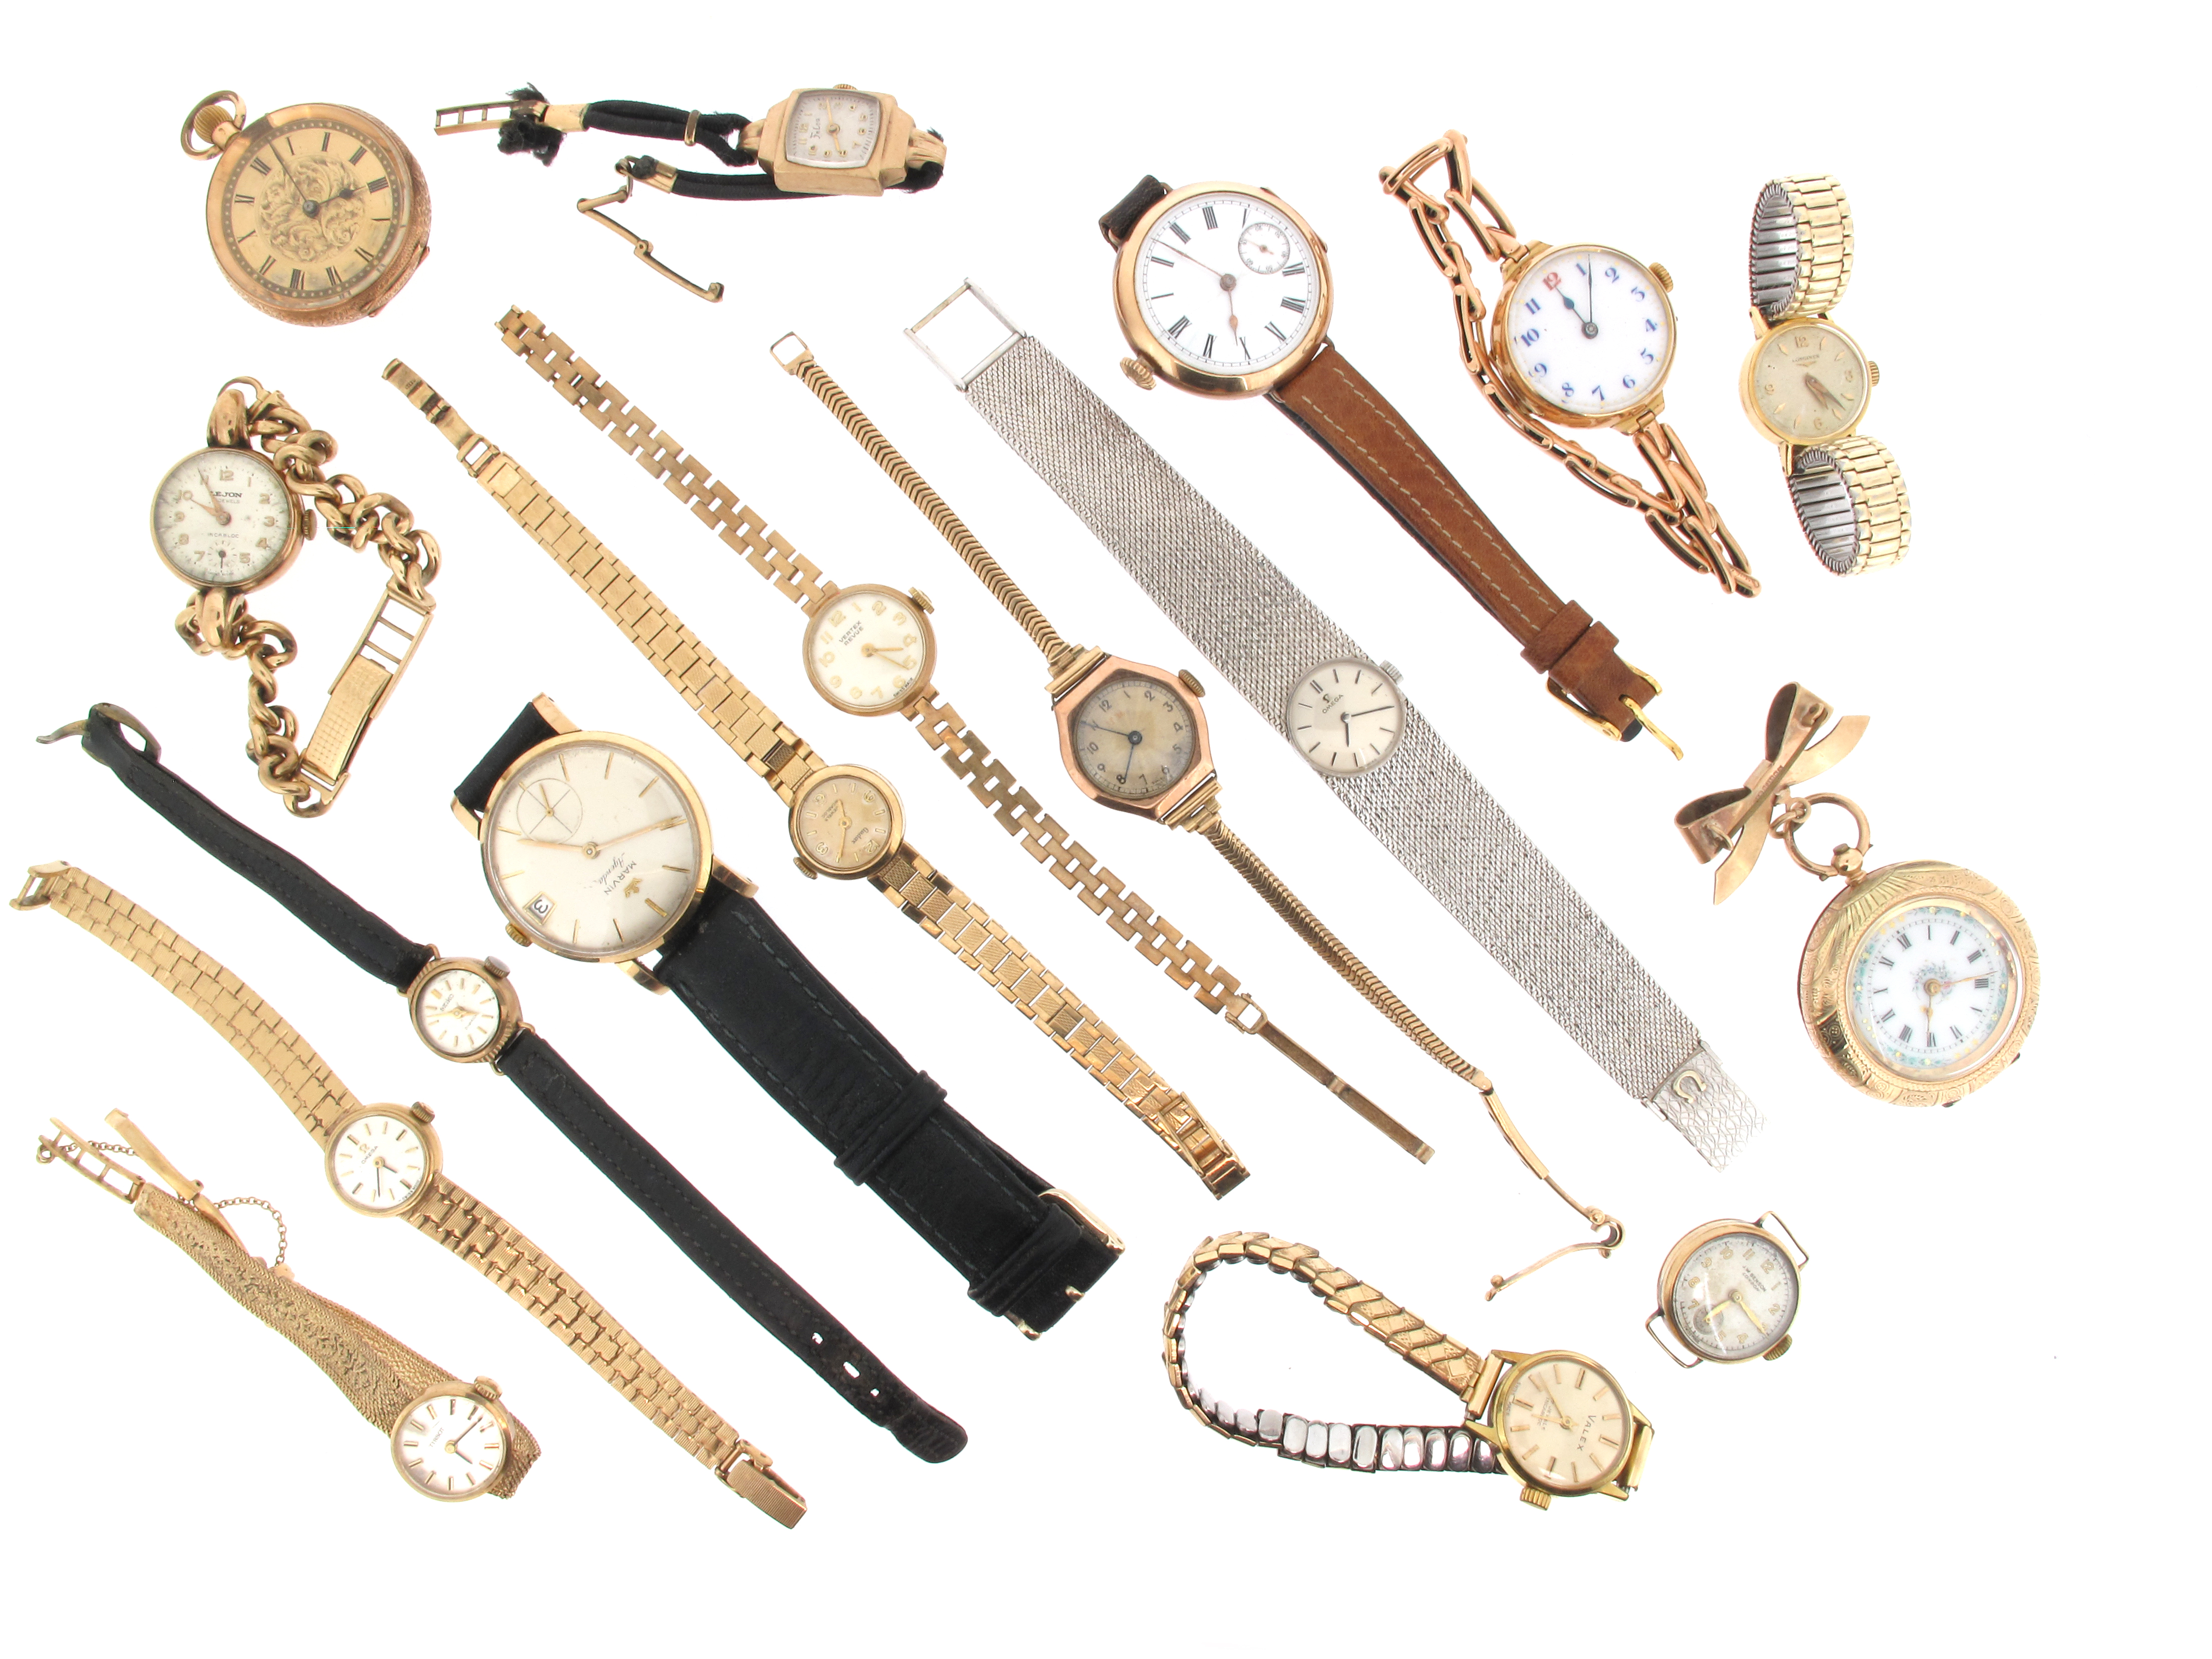 A lady's white gold wristwatch by Omega